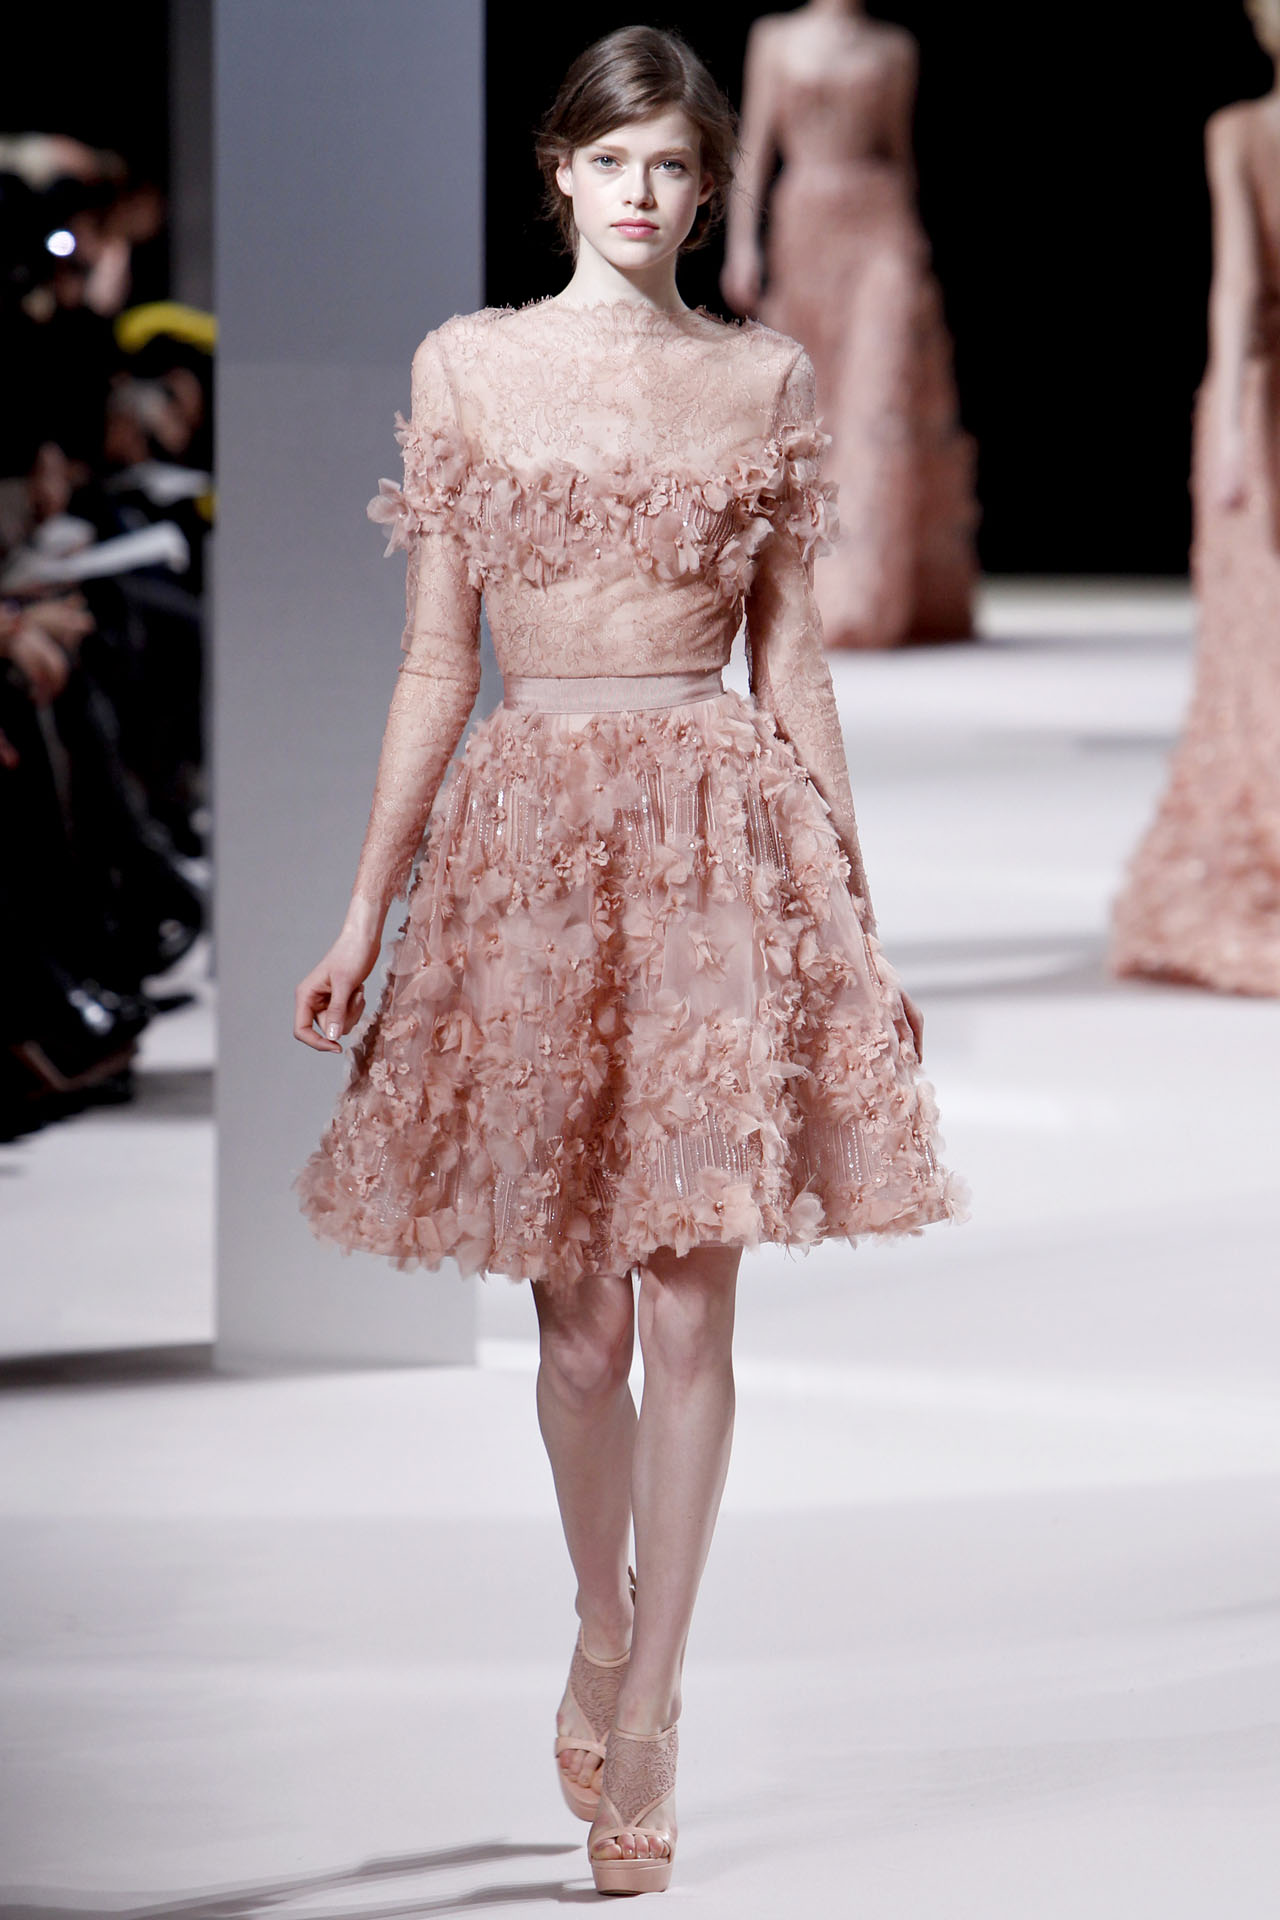 Elie saab spring 2011 paris haute couture vincent ko for Haute couture fashion